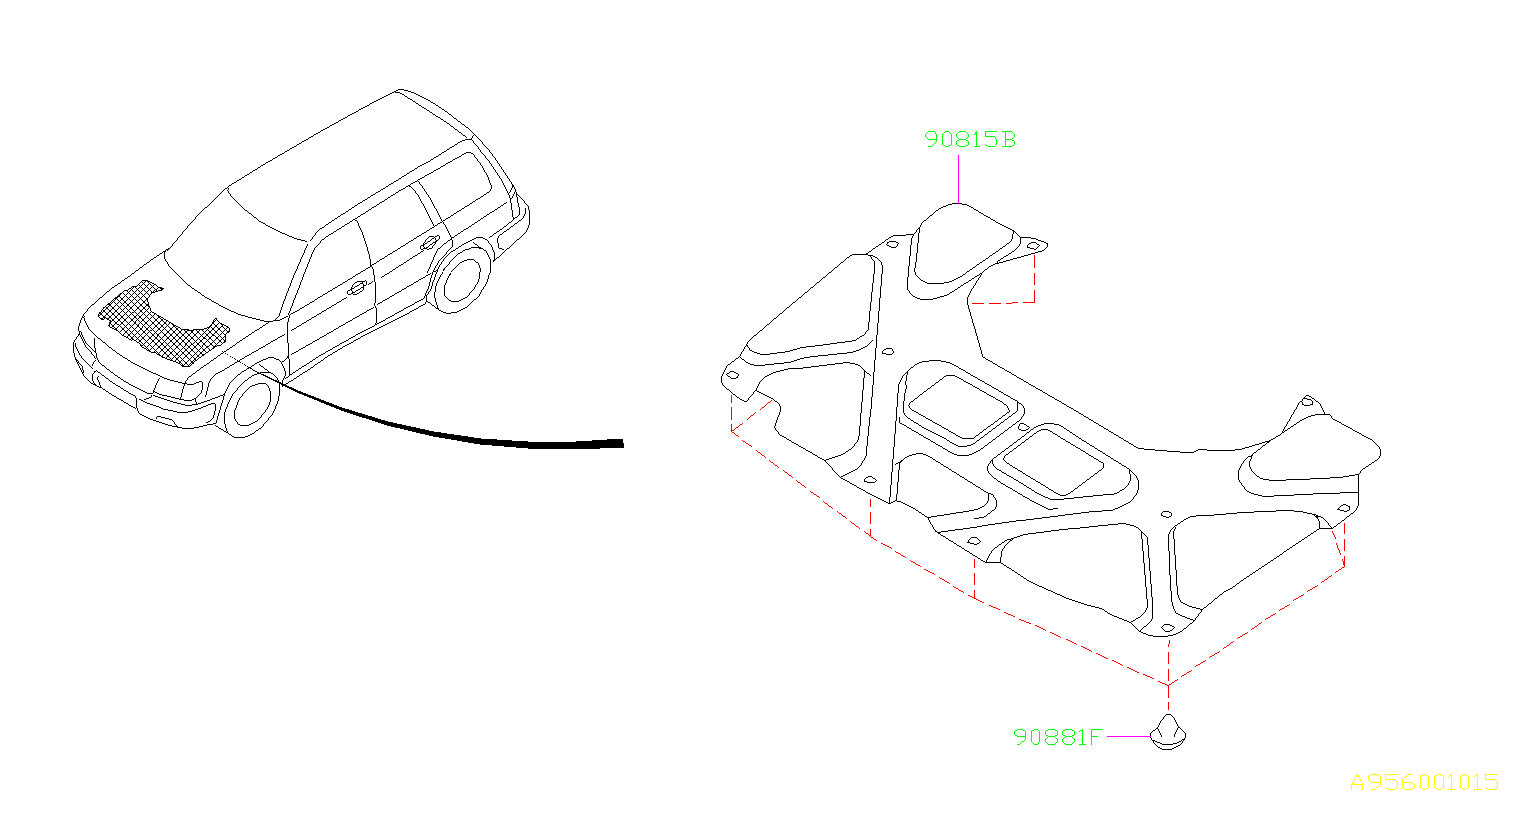 2004 Subaru Impreza Parts Diagram